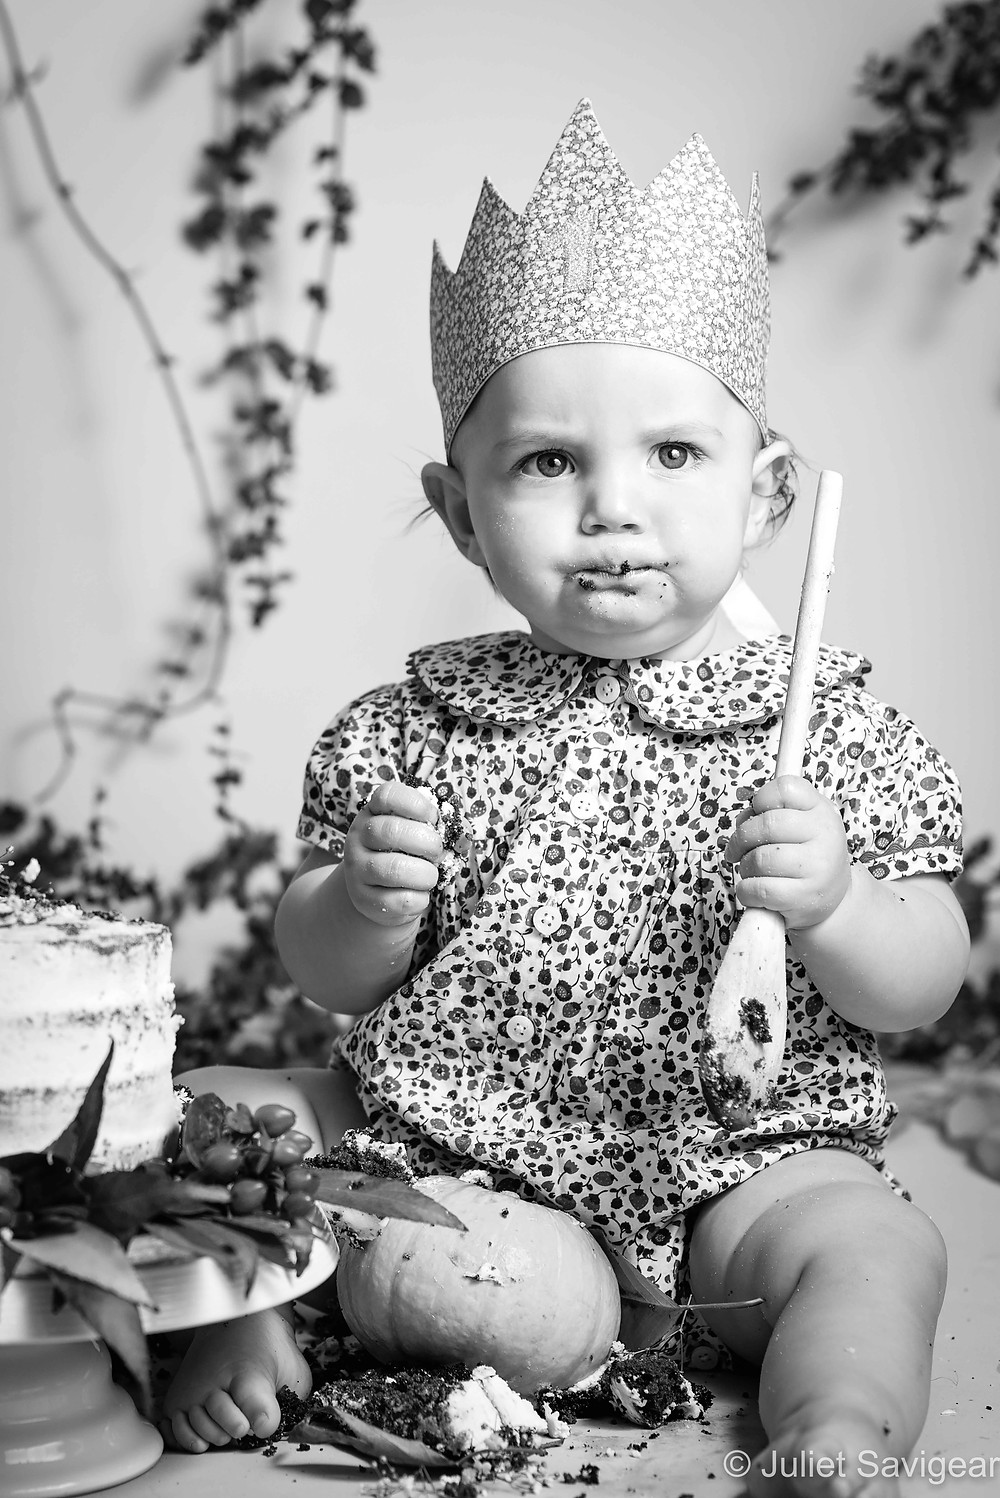 A cake smash is a serious matter